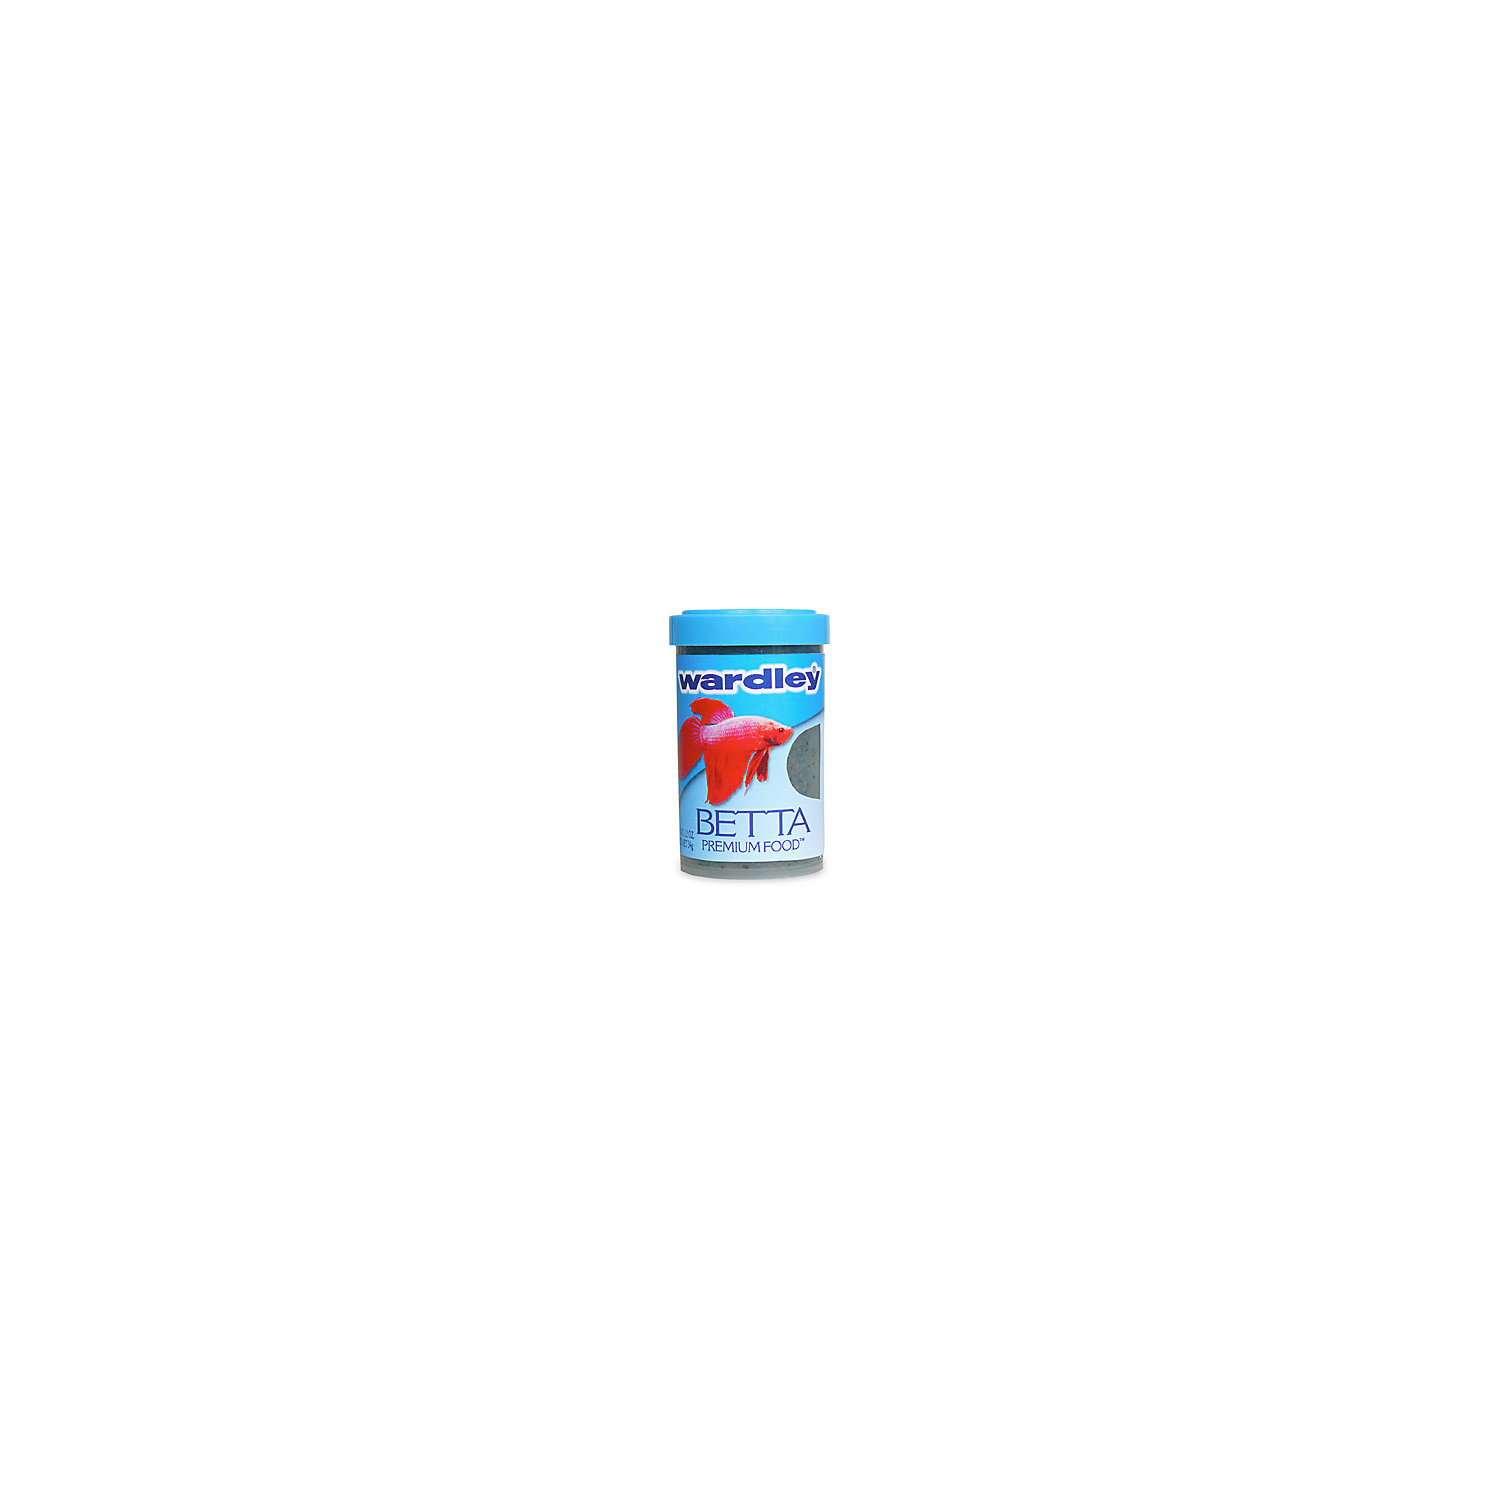 Wardley Premium Betta Food 1.2 Oz.